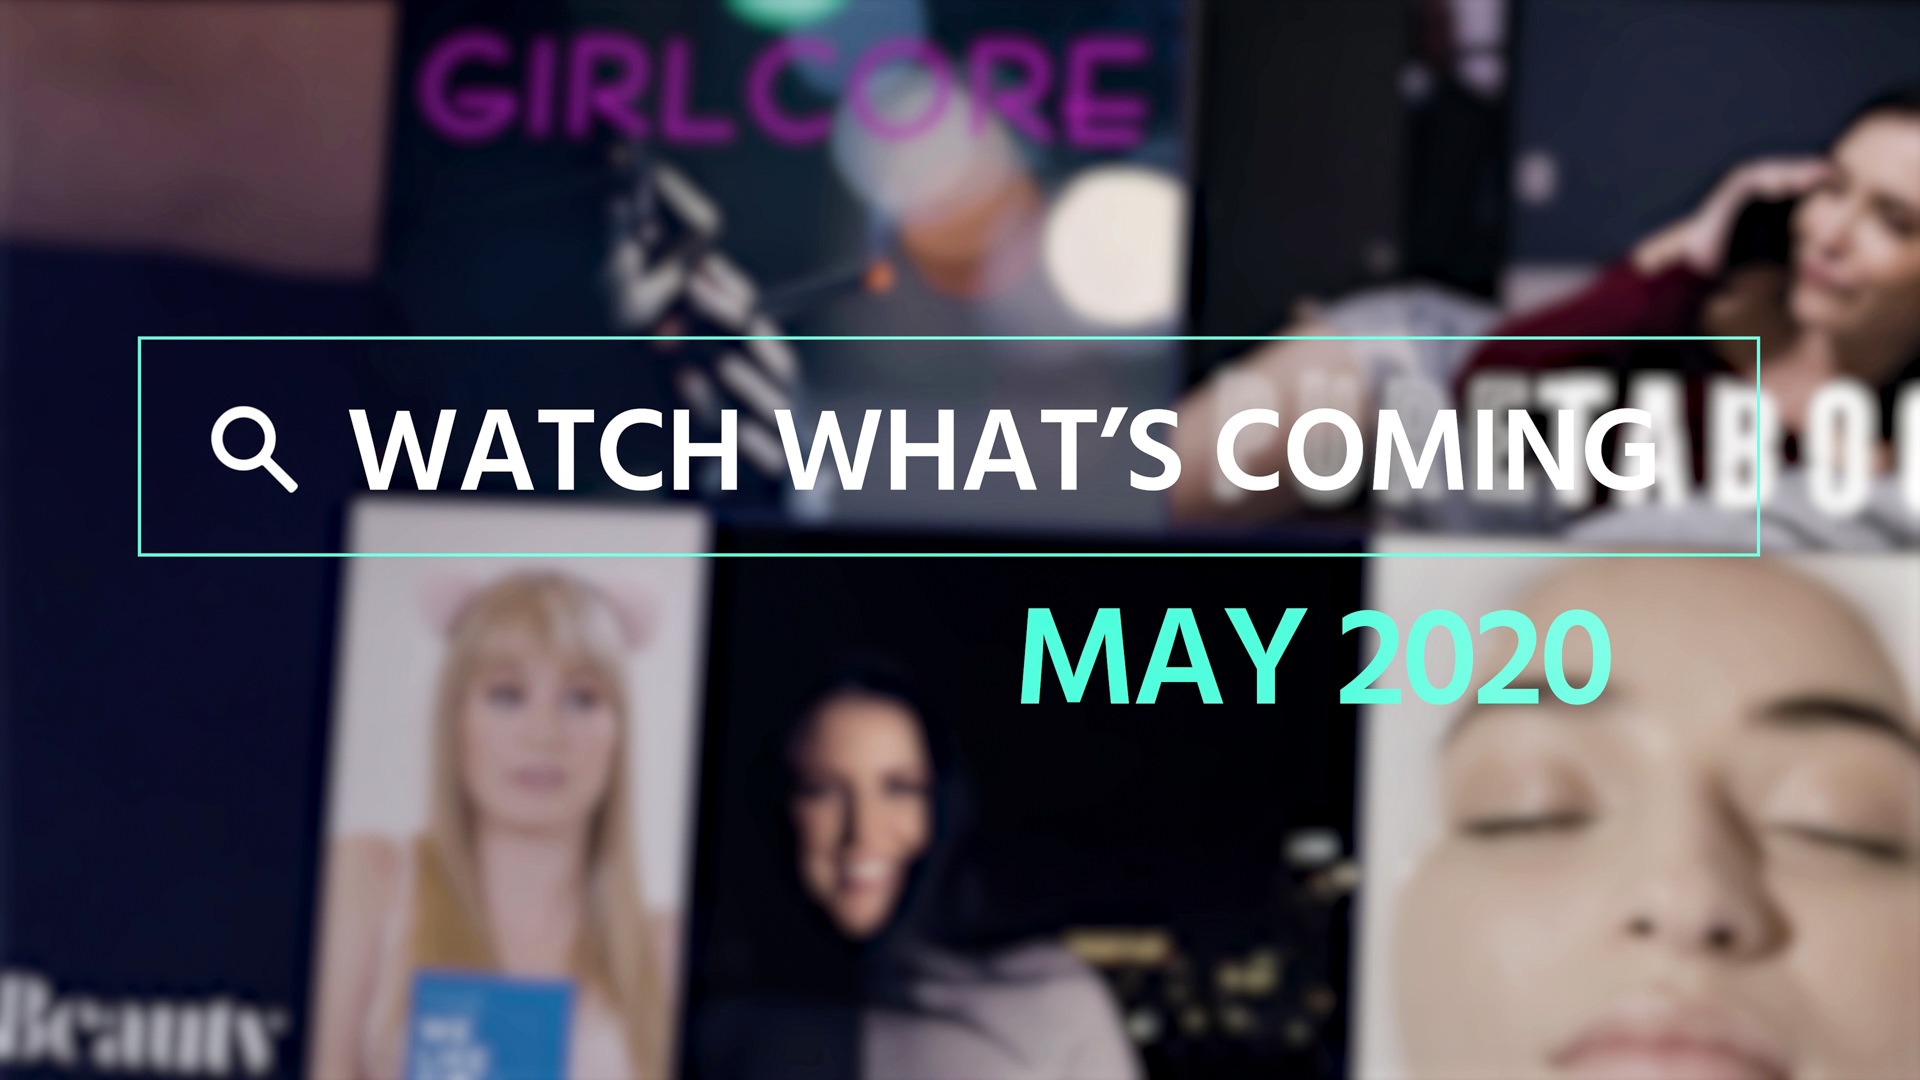 Watch What's Coming | May 2020 1